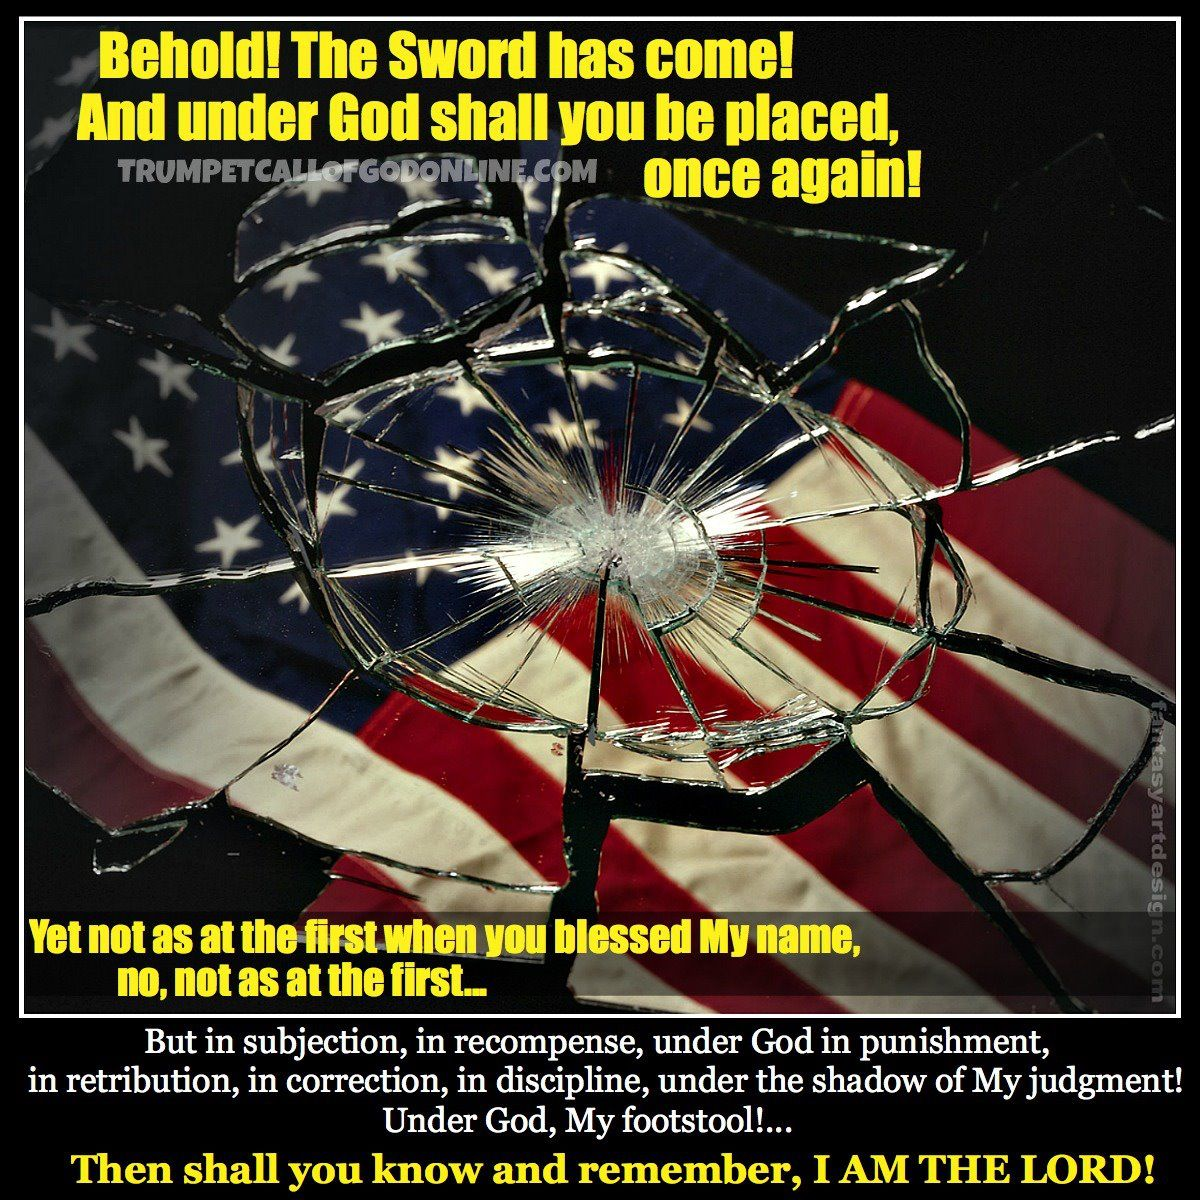 """Volume 7 """"Thus Says The Lord to the United States, and to All the Churches of Men Which Dwell Within Its Borders: Return to Me! Stand Up or Bow Down!... Call Out, Cry and Wail!"""" ~TrumpetCallofGodOnline"""